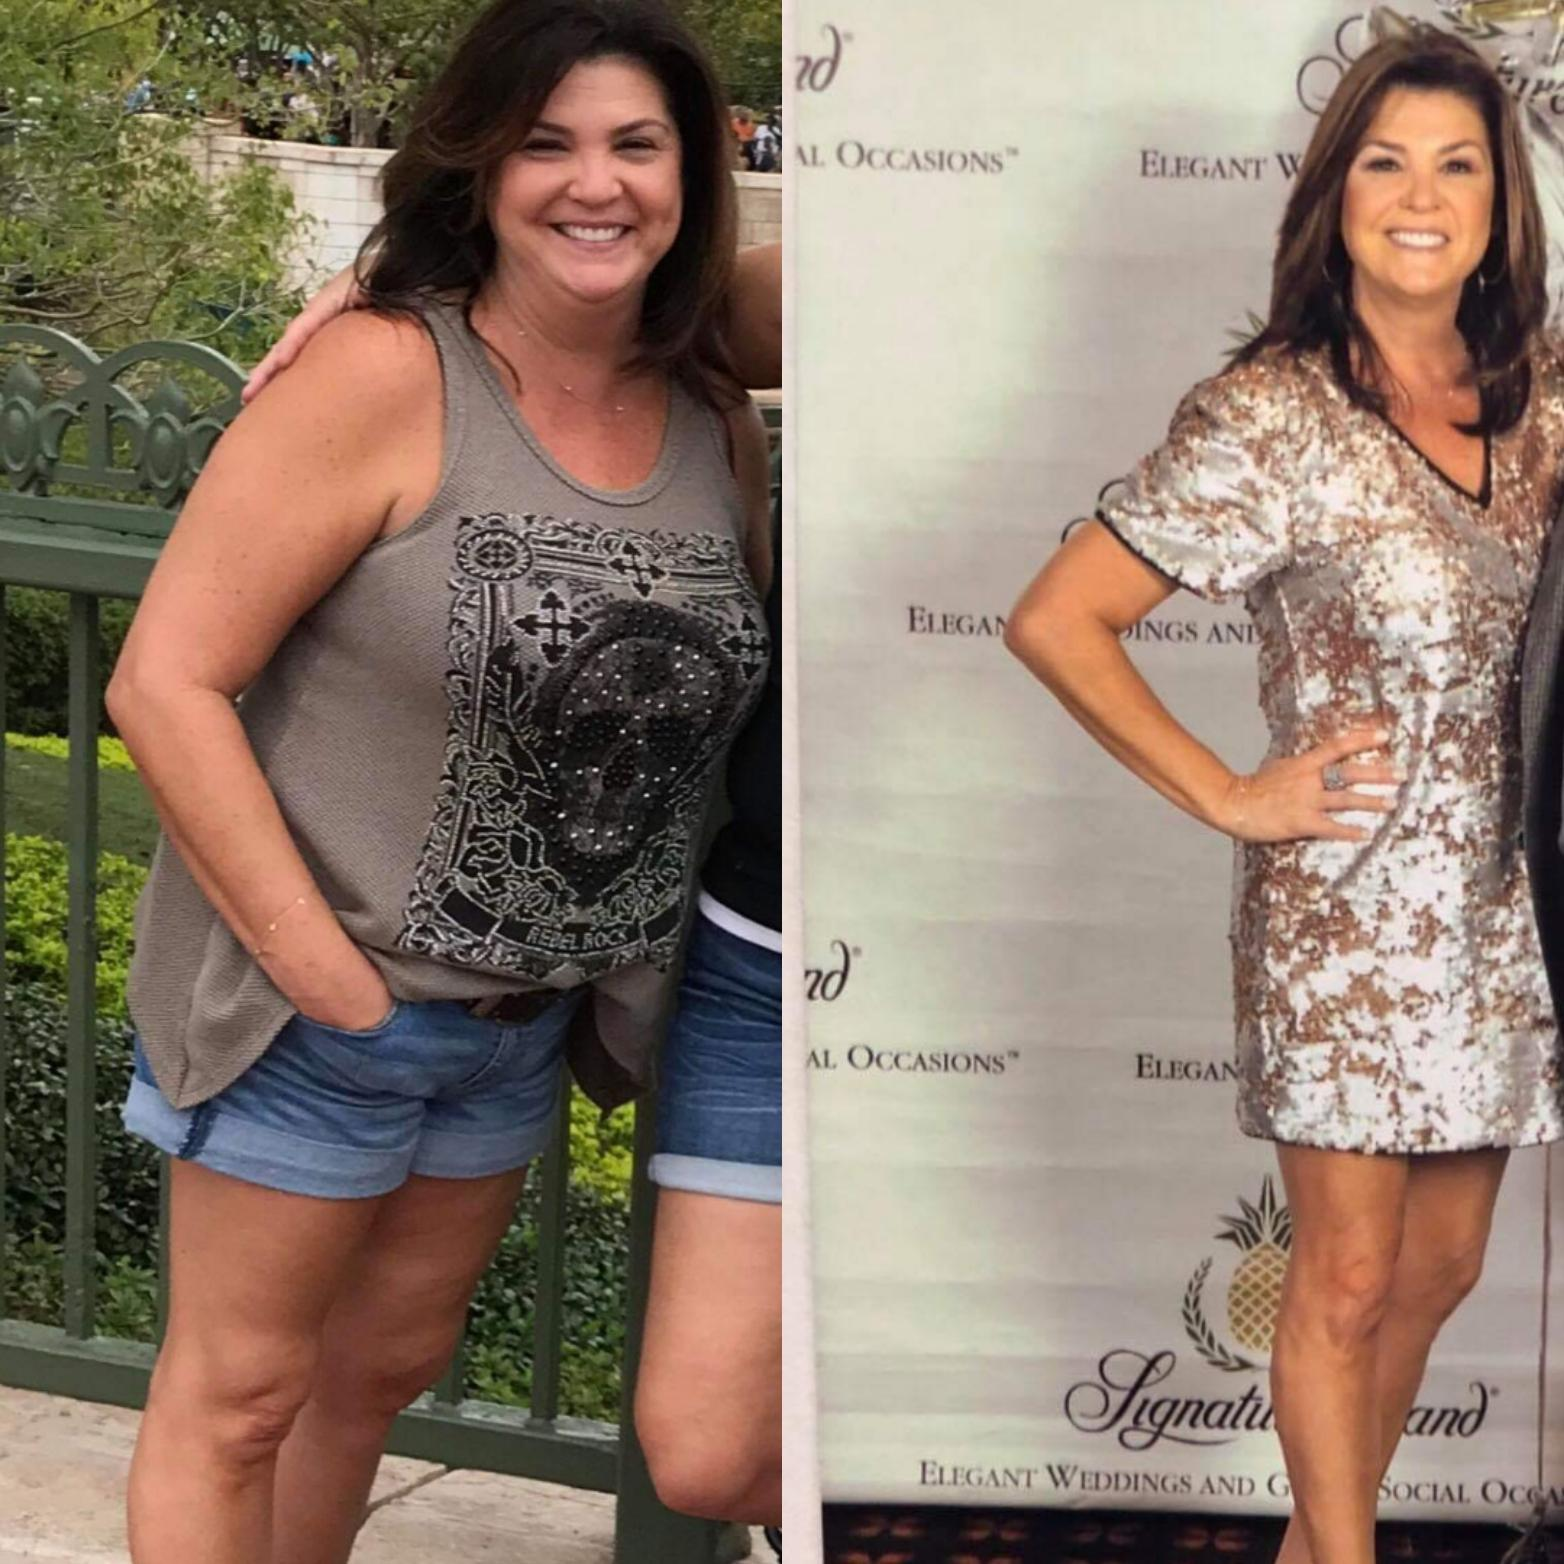 37 lbs Fat Loss Before and After 5'3 Female 167 lbs to 130 lbs